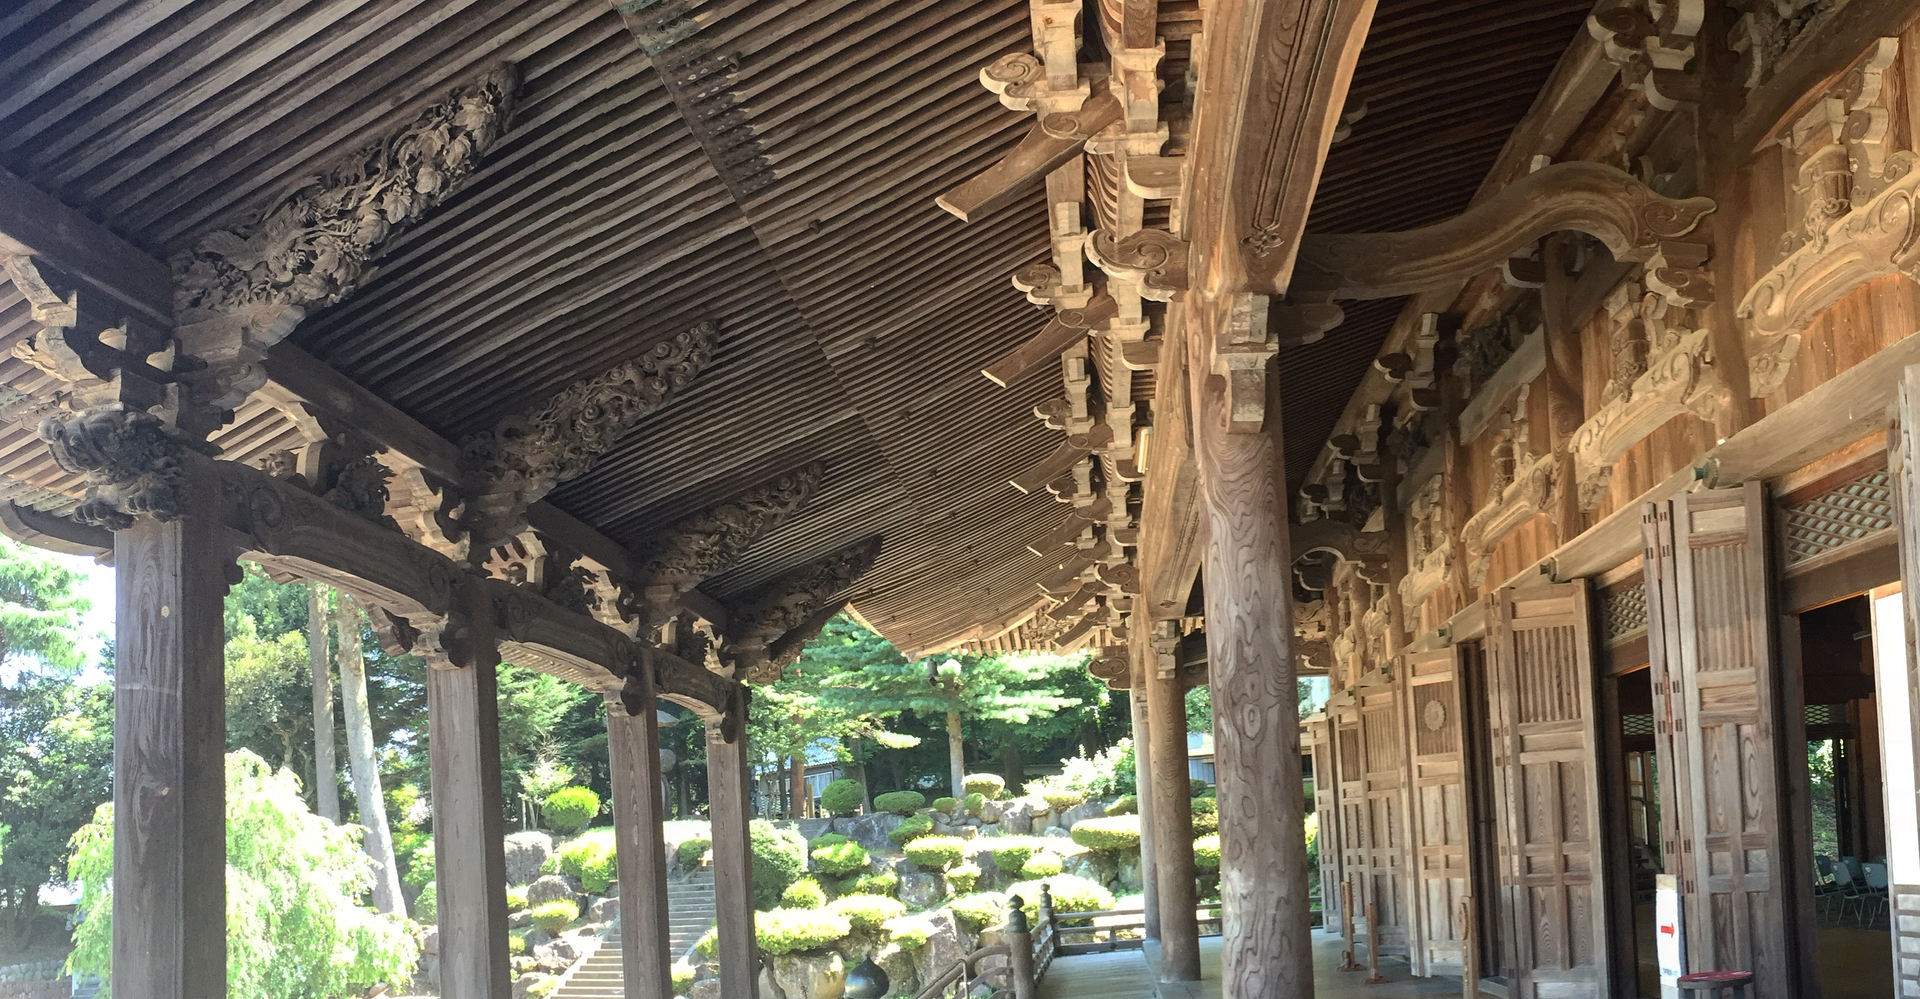 600-year-old Zuisenji Temple